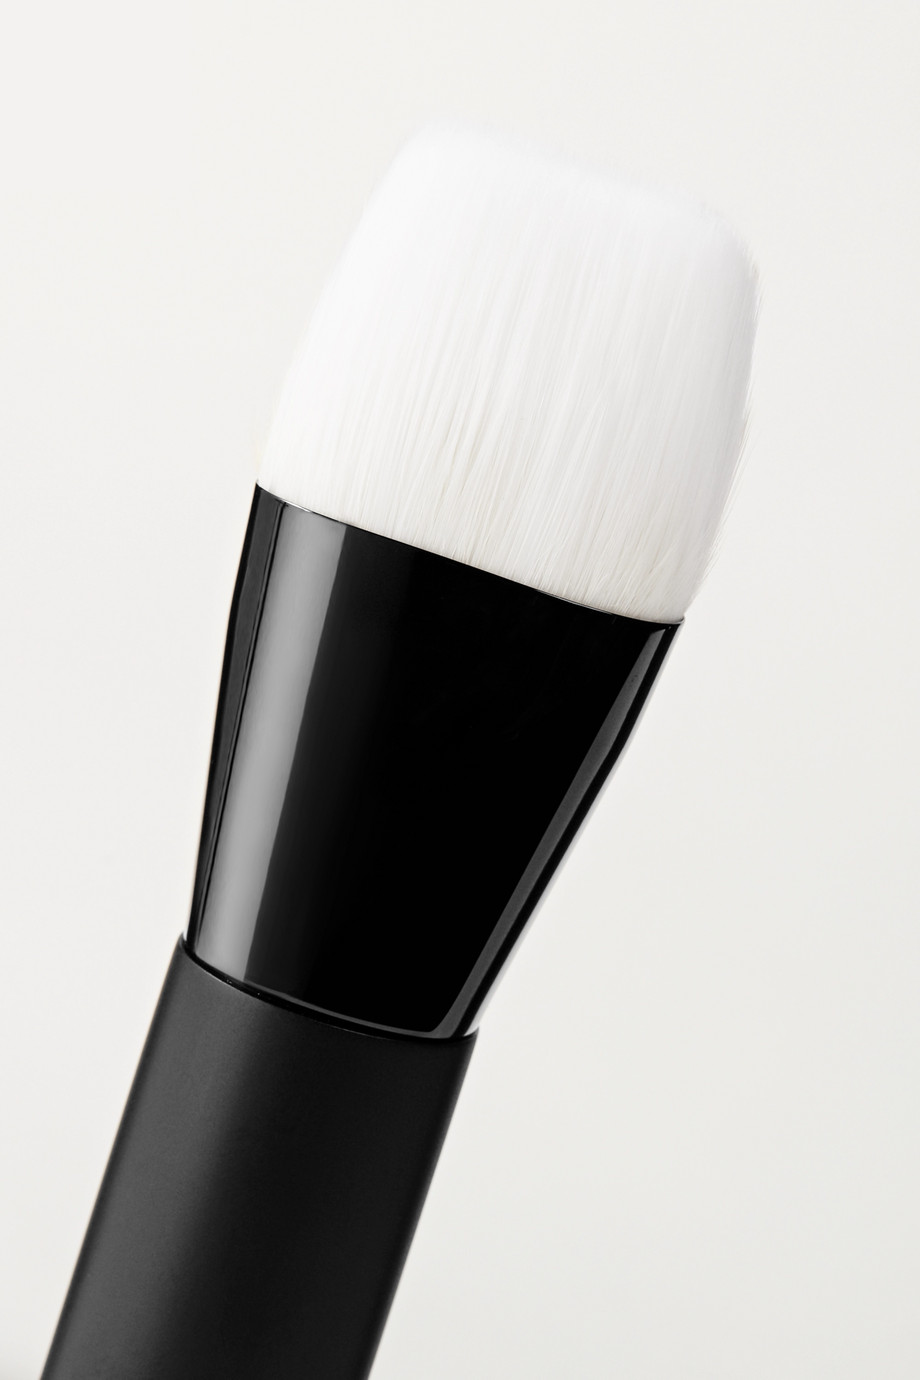 RAE MORRIS Jishaku 23 Liquid Foundation Vegan Brush